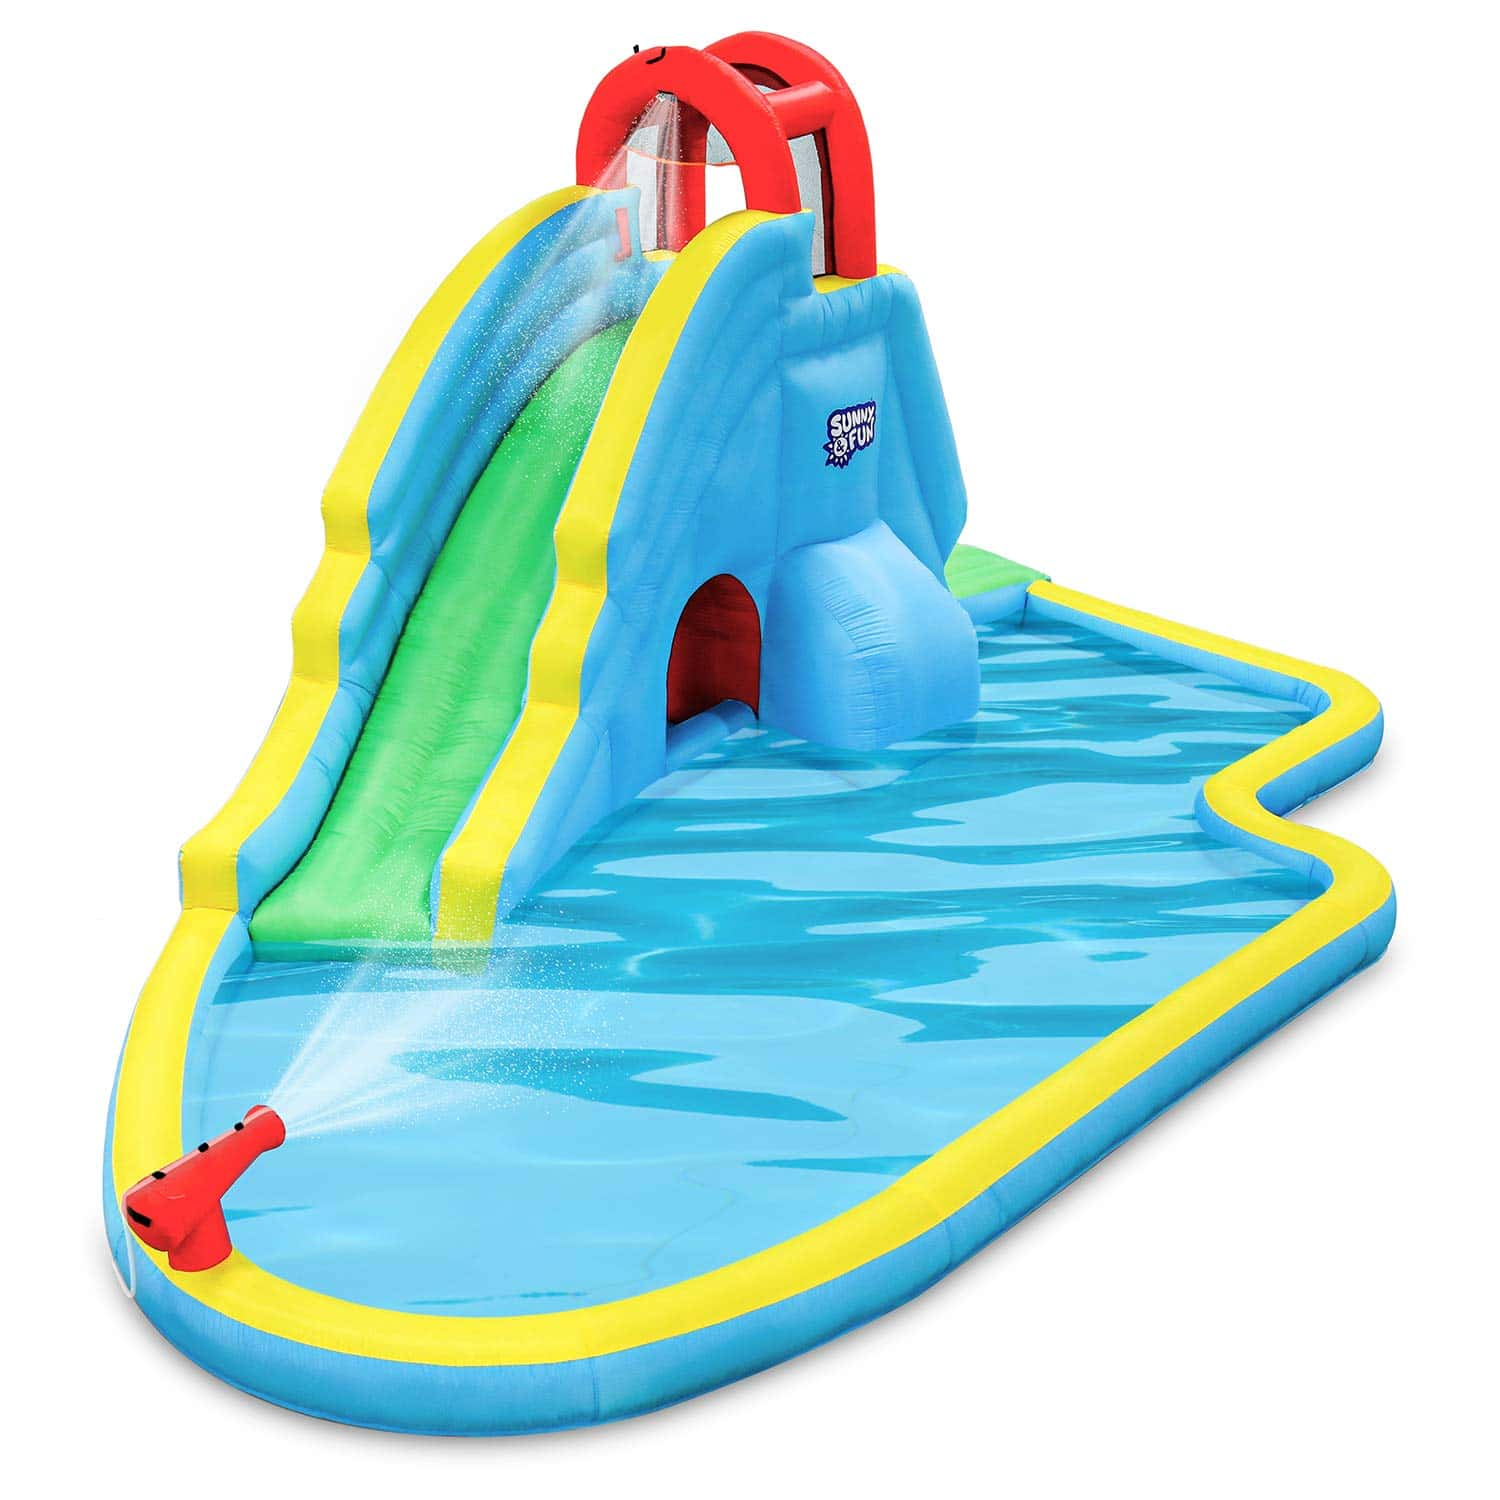 Deluxe Inflatable Water Slide Park by Sunny & Fun